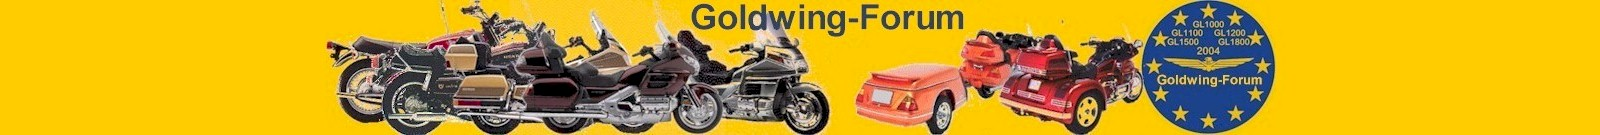 GoldWing-Forum